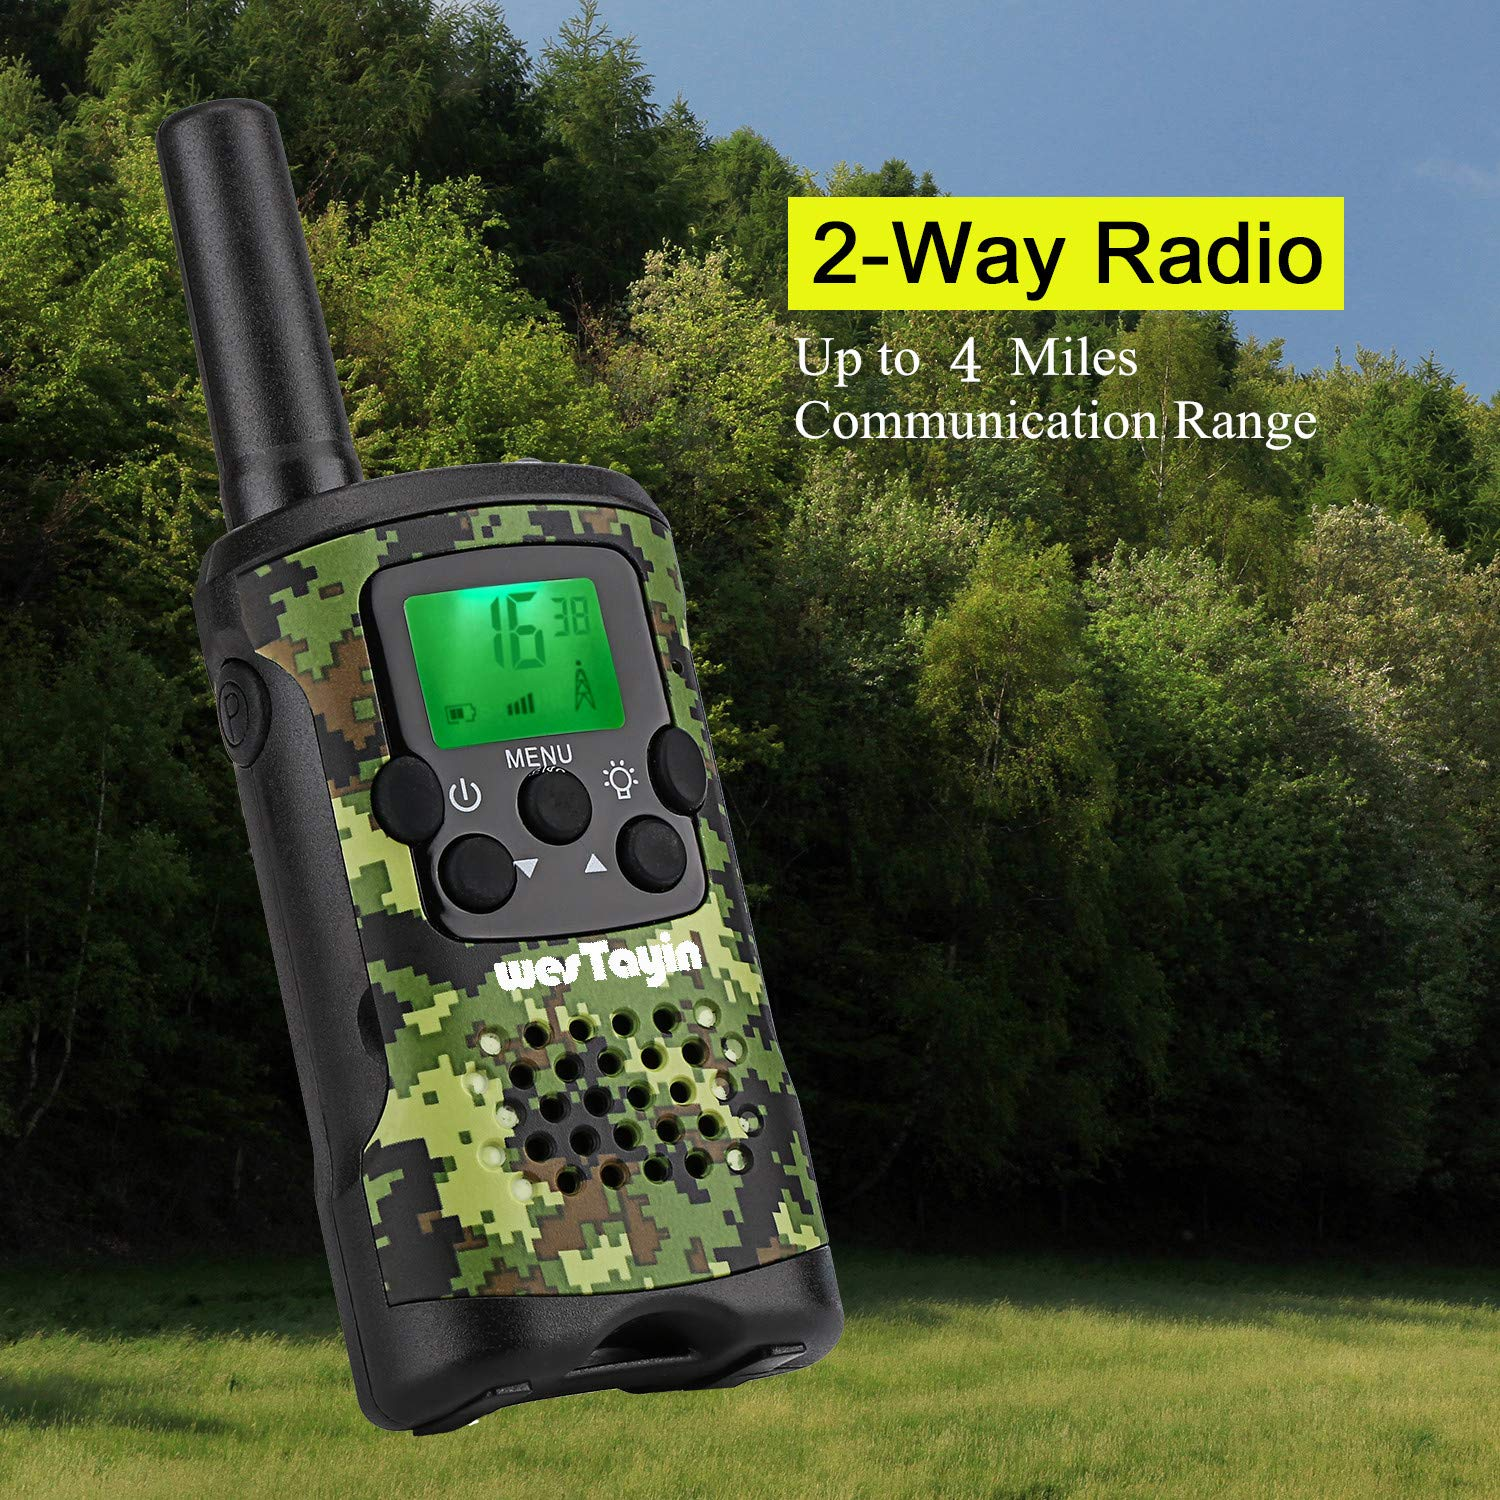 2 Pack Walkie Talkies for Adults 22 Channels with Crystal Sound Green Camo Long Range T4801 Kids Walkie Talkies with Vox-Hands Free Westayin Range Up to 4 Mile Walkie Talkies